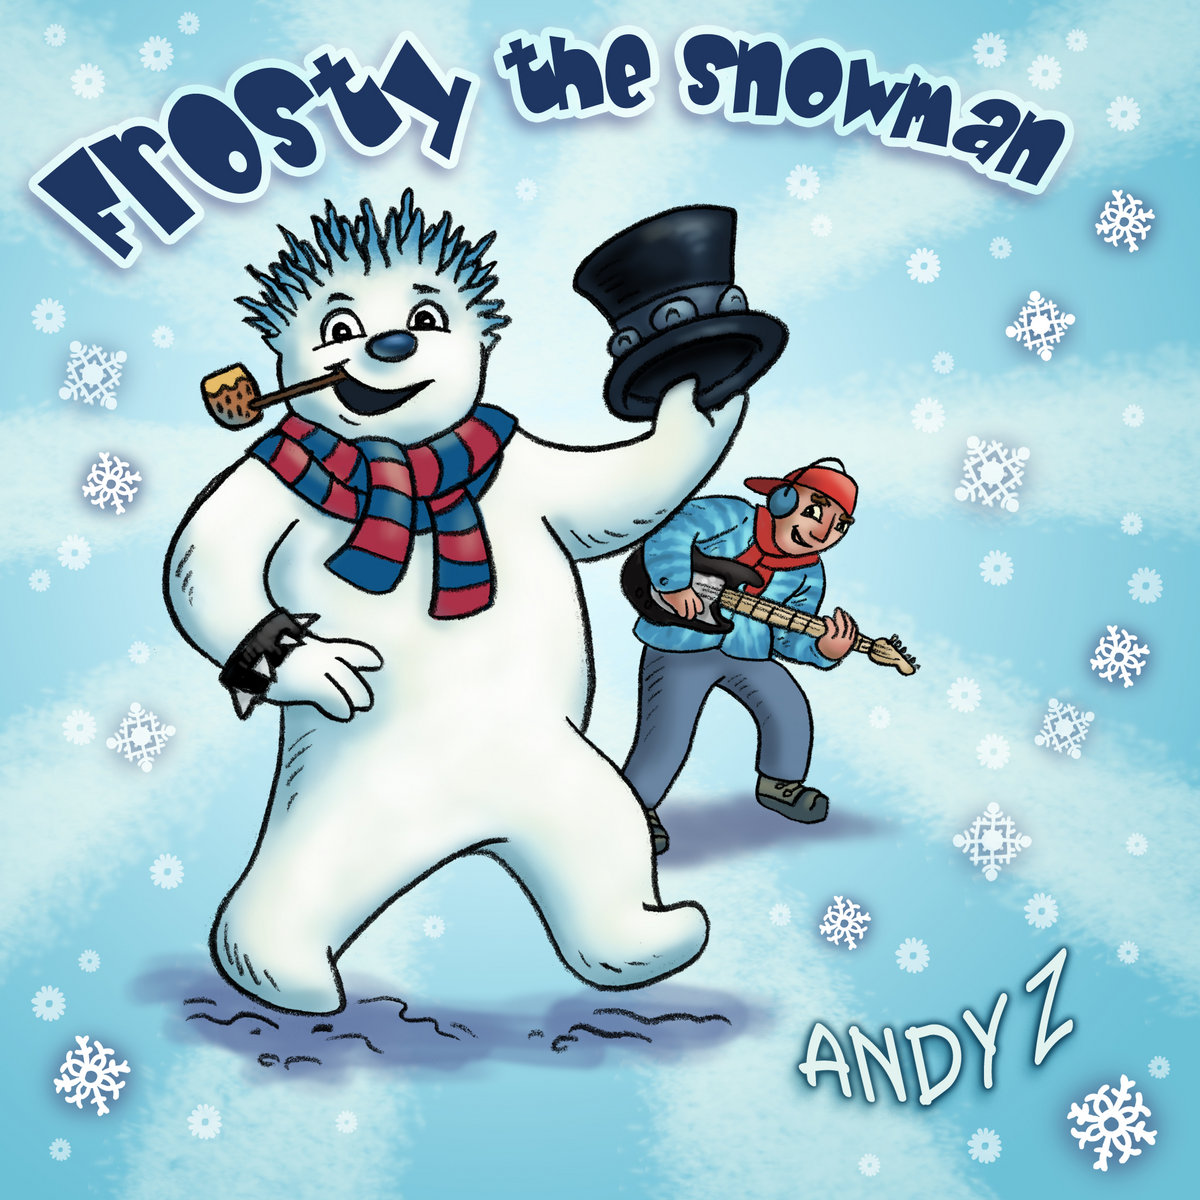 Frosty The Snowman (single) by Andy Z